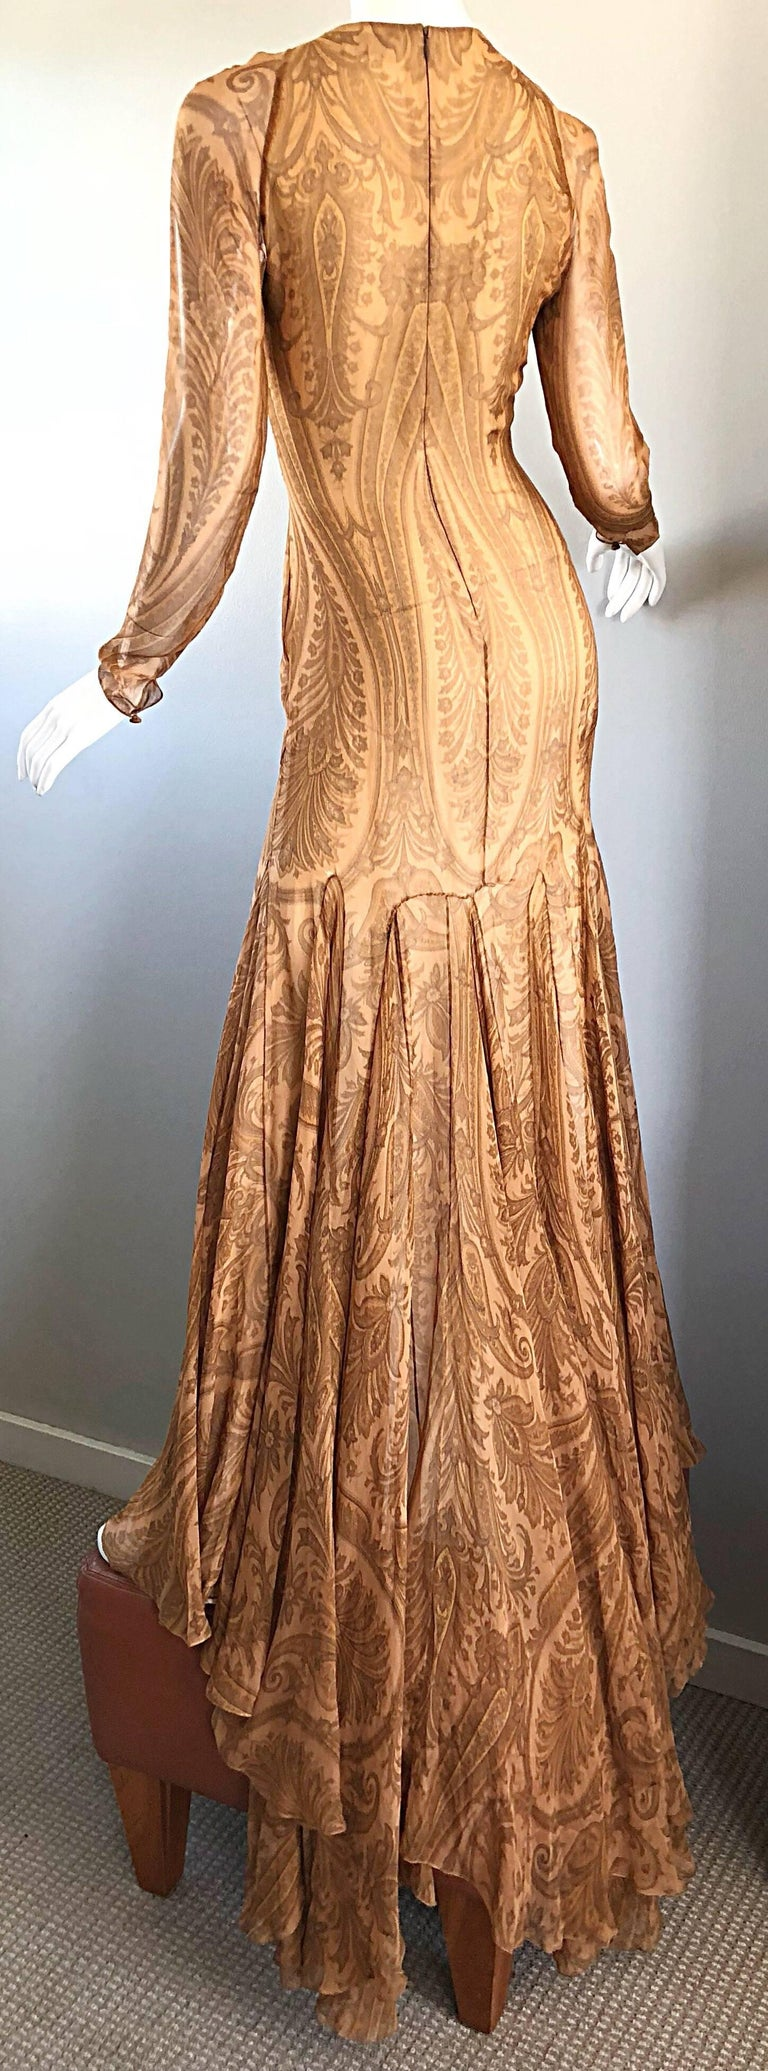 Sensational 1990s Bill Blass Couture Nude Silk Chiffon Paisley Vintage 90s Gown  In Excellent Condition For Sale In Chicago, IL